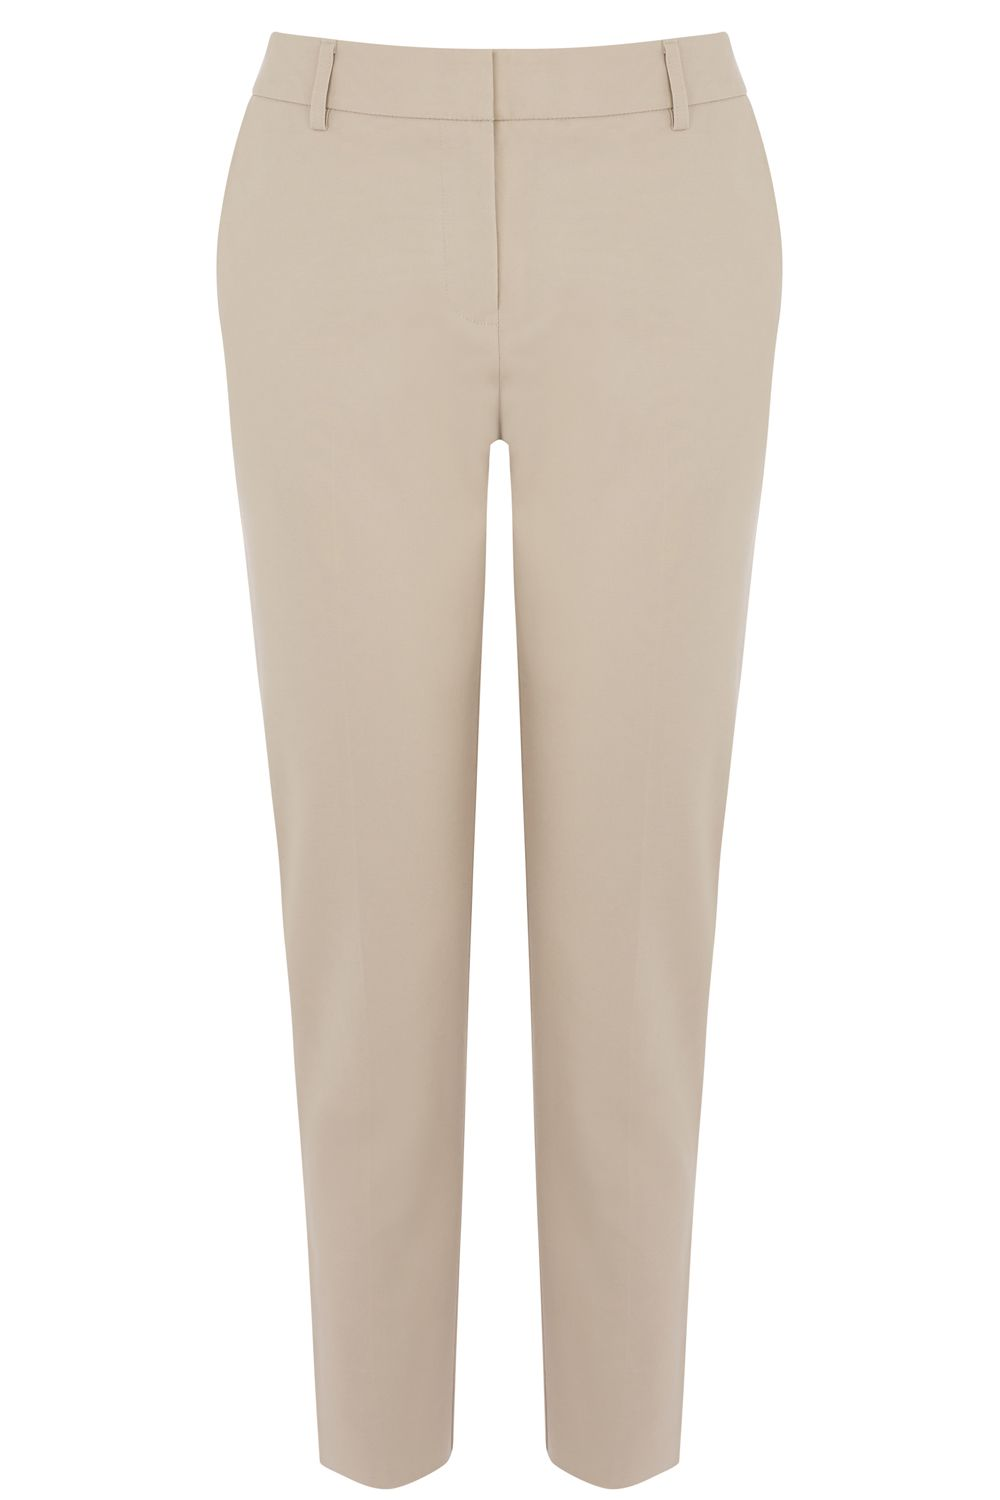 Warehouse Compact Cotton Trousers, Stone